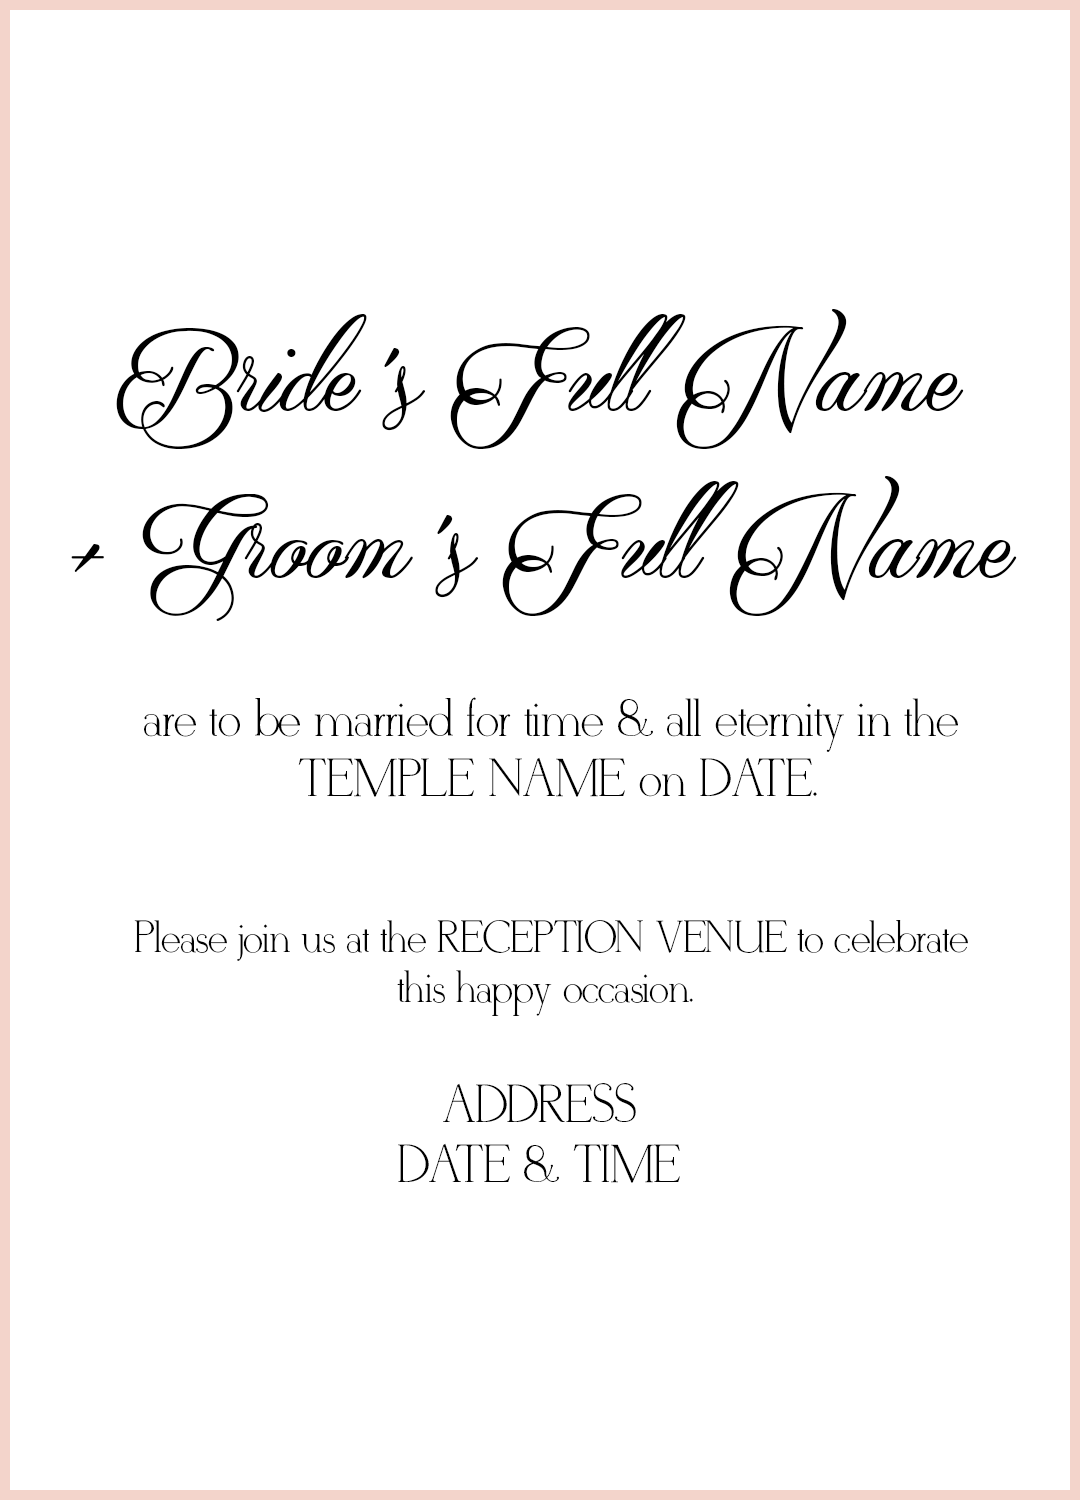 8 LDS Wedding Invitation Wording Samples | LDS Wedding